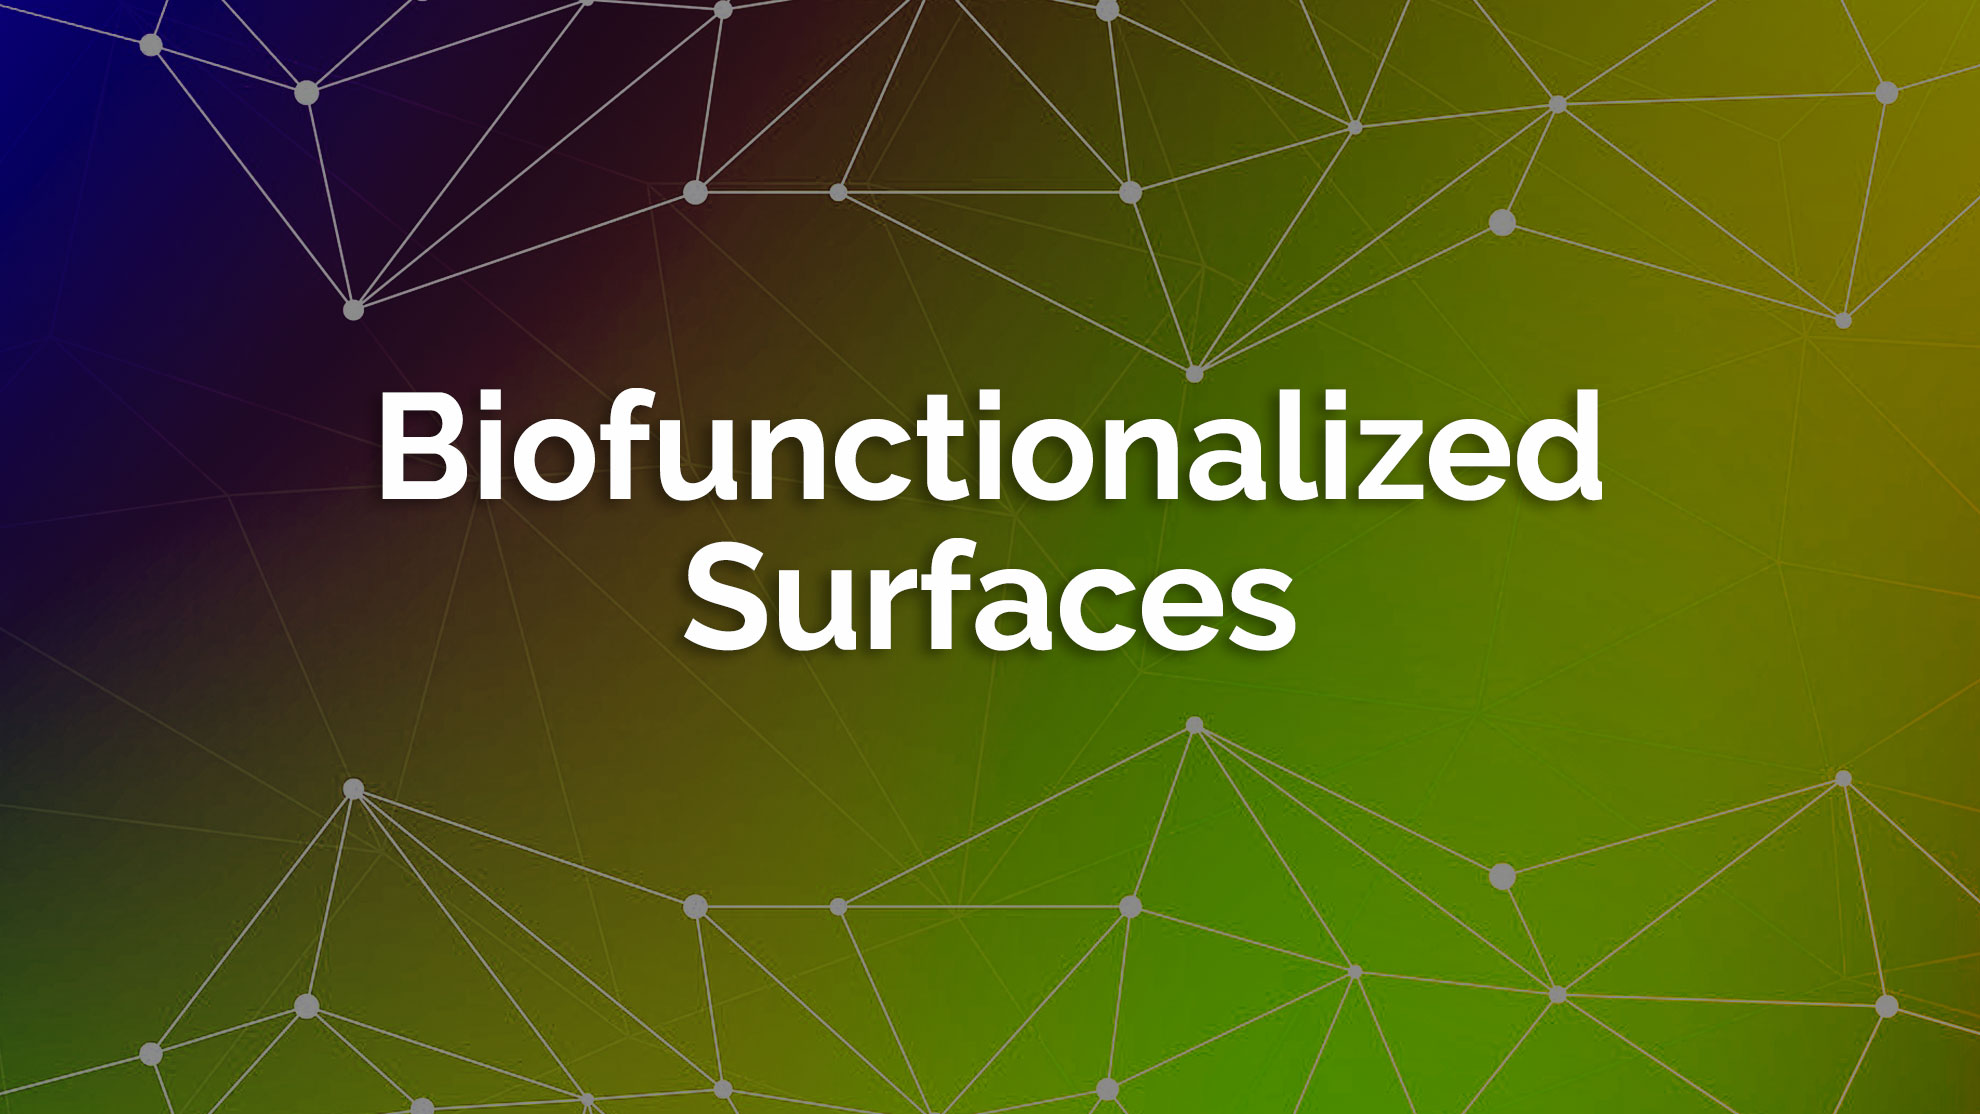 Biofunctionalized Surfaces